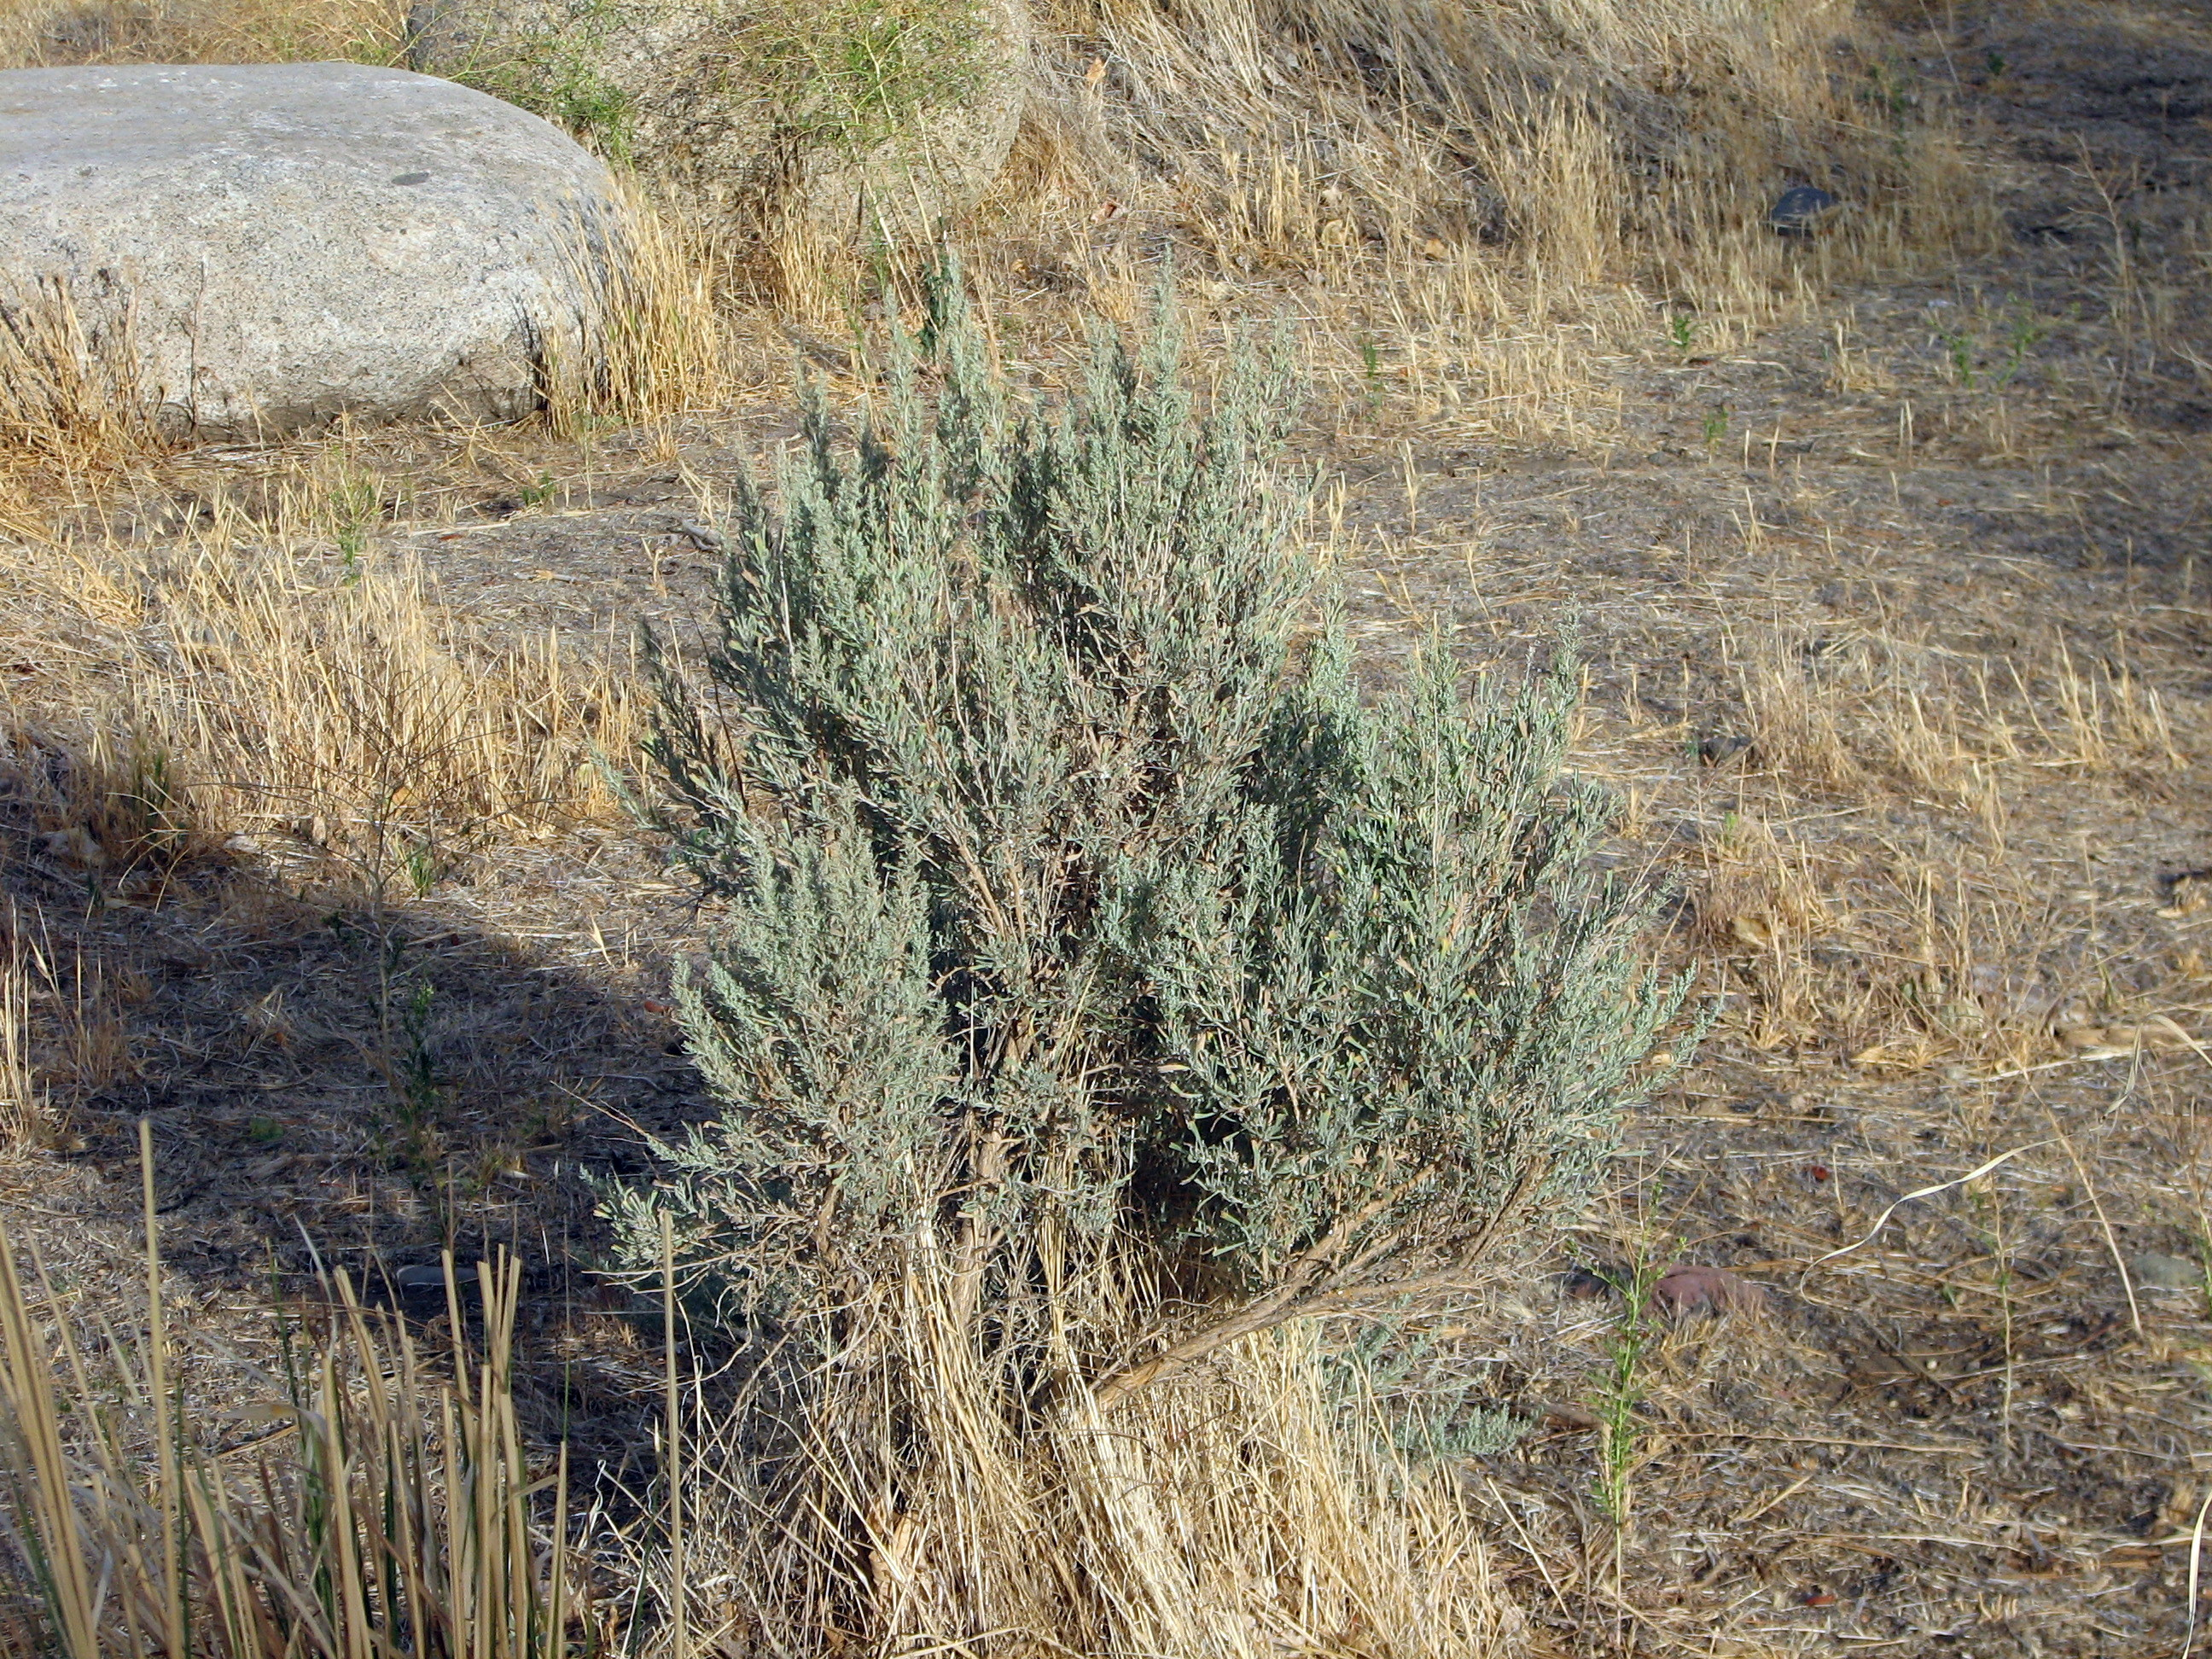 File:Sagebrush in bloom 2.jpg - Wikipedia, the free encyclopedia